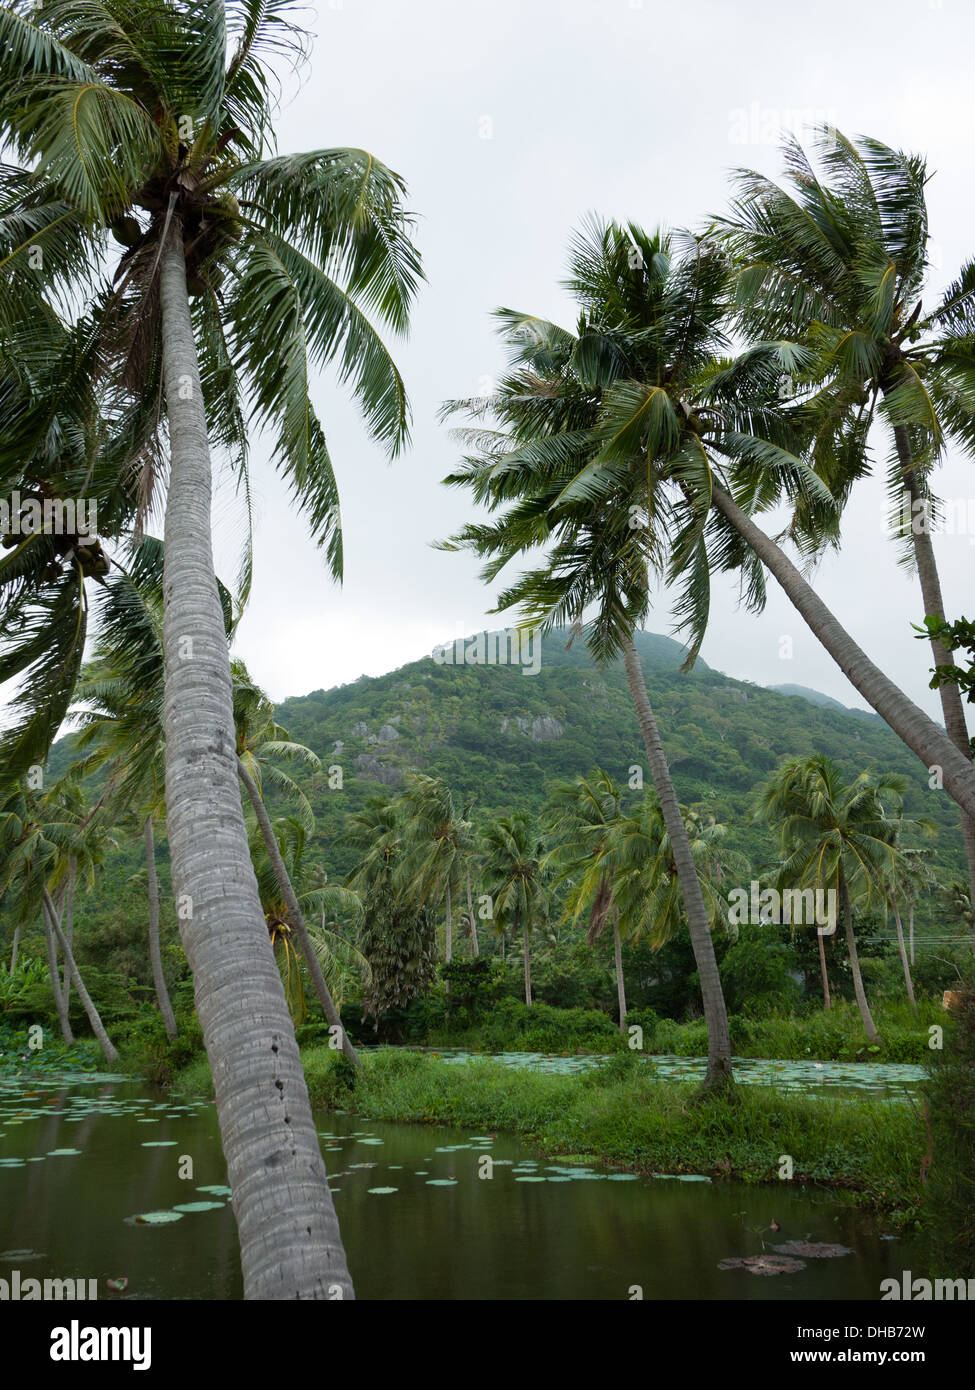 Tropical vegetation in the Con Dao National Park on Con Son Island, one of the Con Dao Islands, Vietnam. - Stock Image